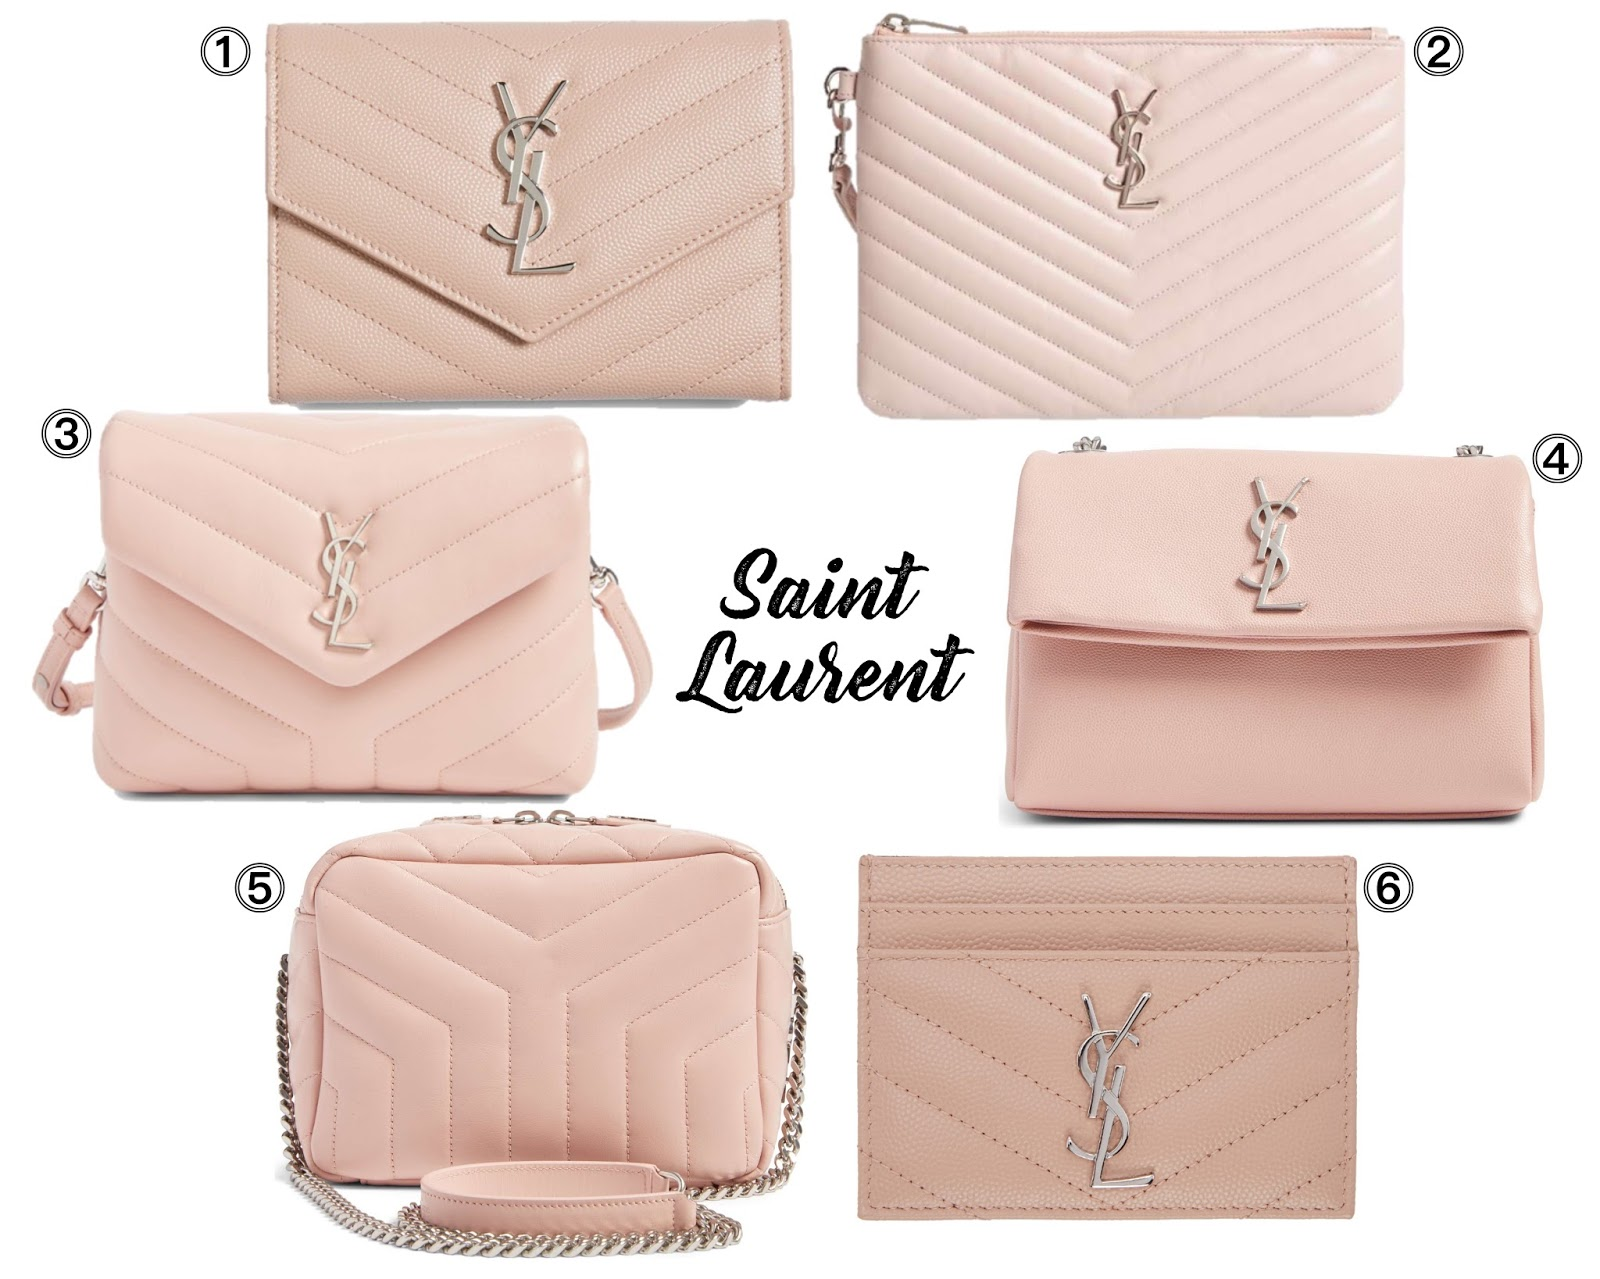 My Favorite Pink Bags From Gucci Saint Laurent